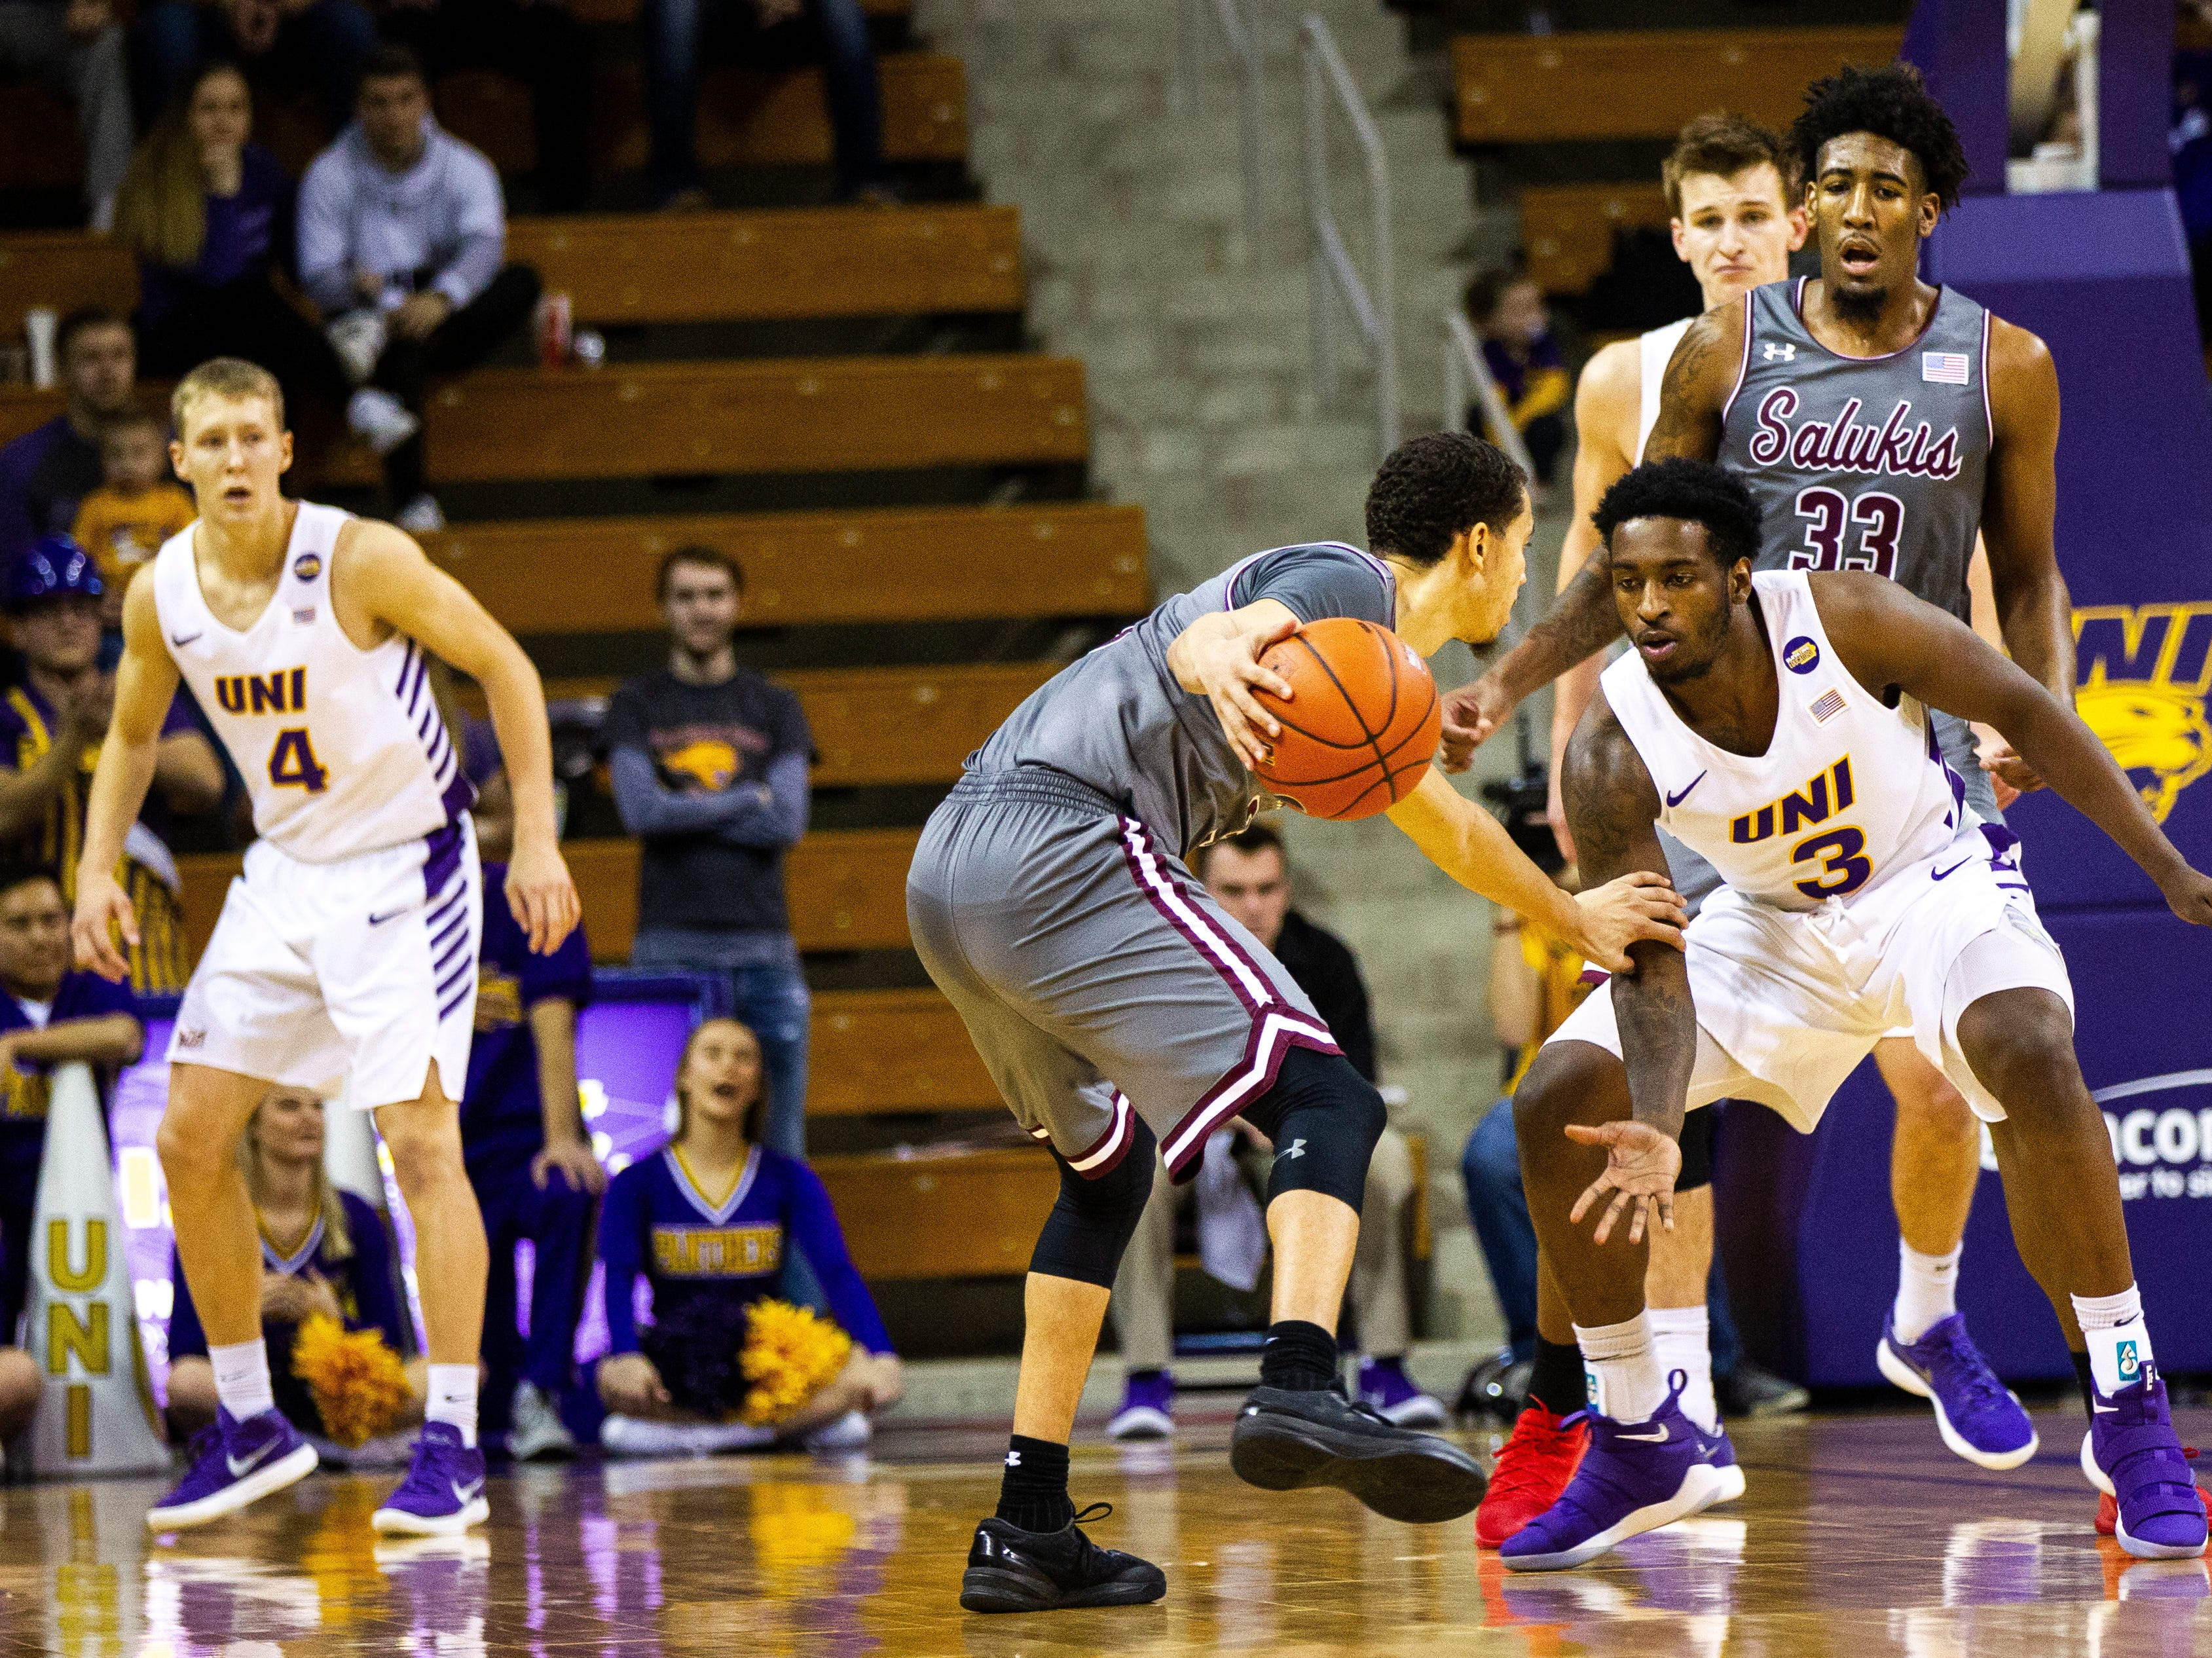 Northern Iowa guard Tywhon Pickford (3) defends Southern Illinois guard Marcus Bartley during a NCAA Missouri Valley Conference men's basketball game on Saturday, Jan. 5, 2019, at the McLeod Center in Cedar Falls, Iowa.